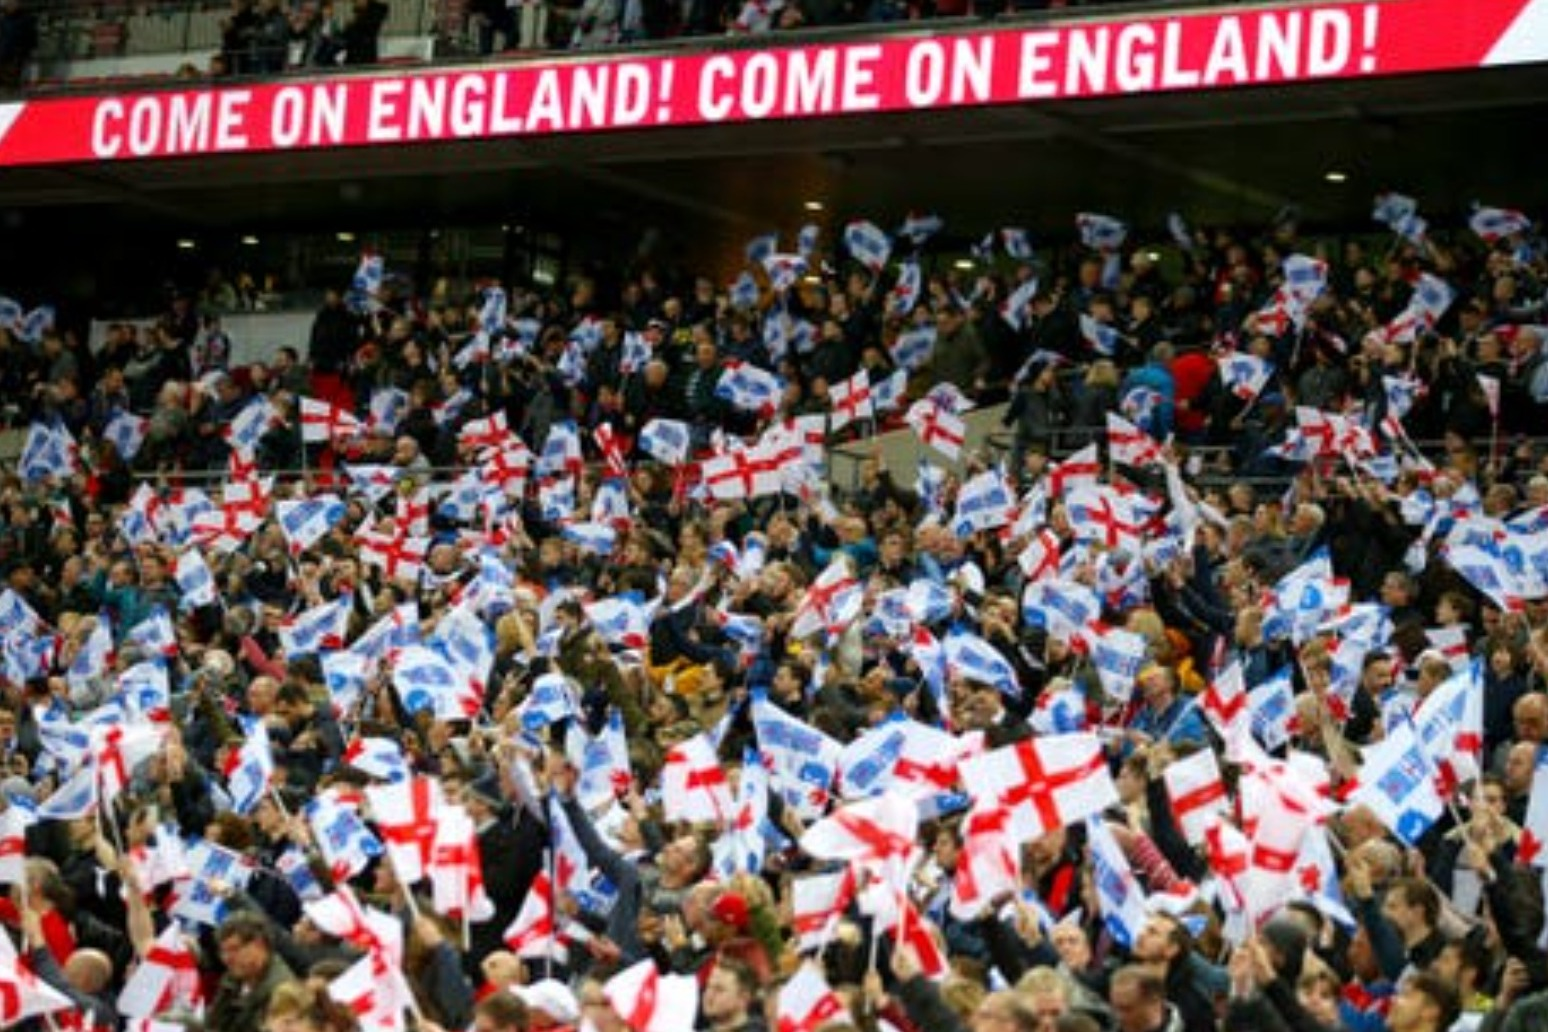 JOINT BID FROM UK AND IRELAND TO HOST 2030 WORLD CUP RECEIVES GOVERNMENT BACKING